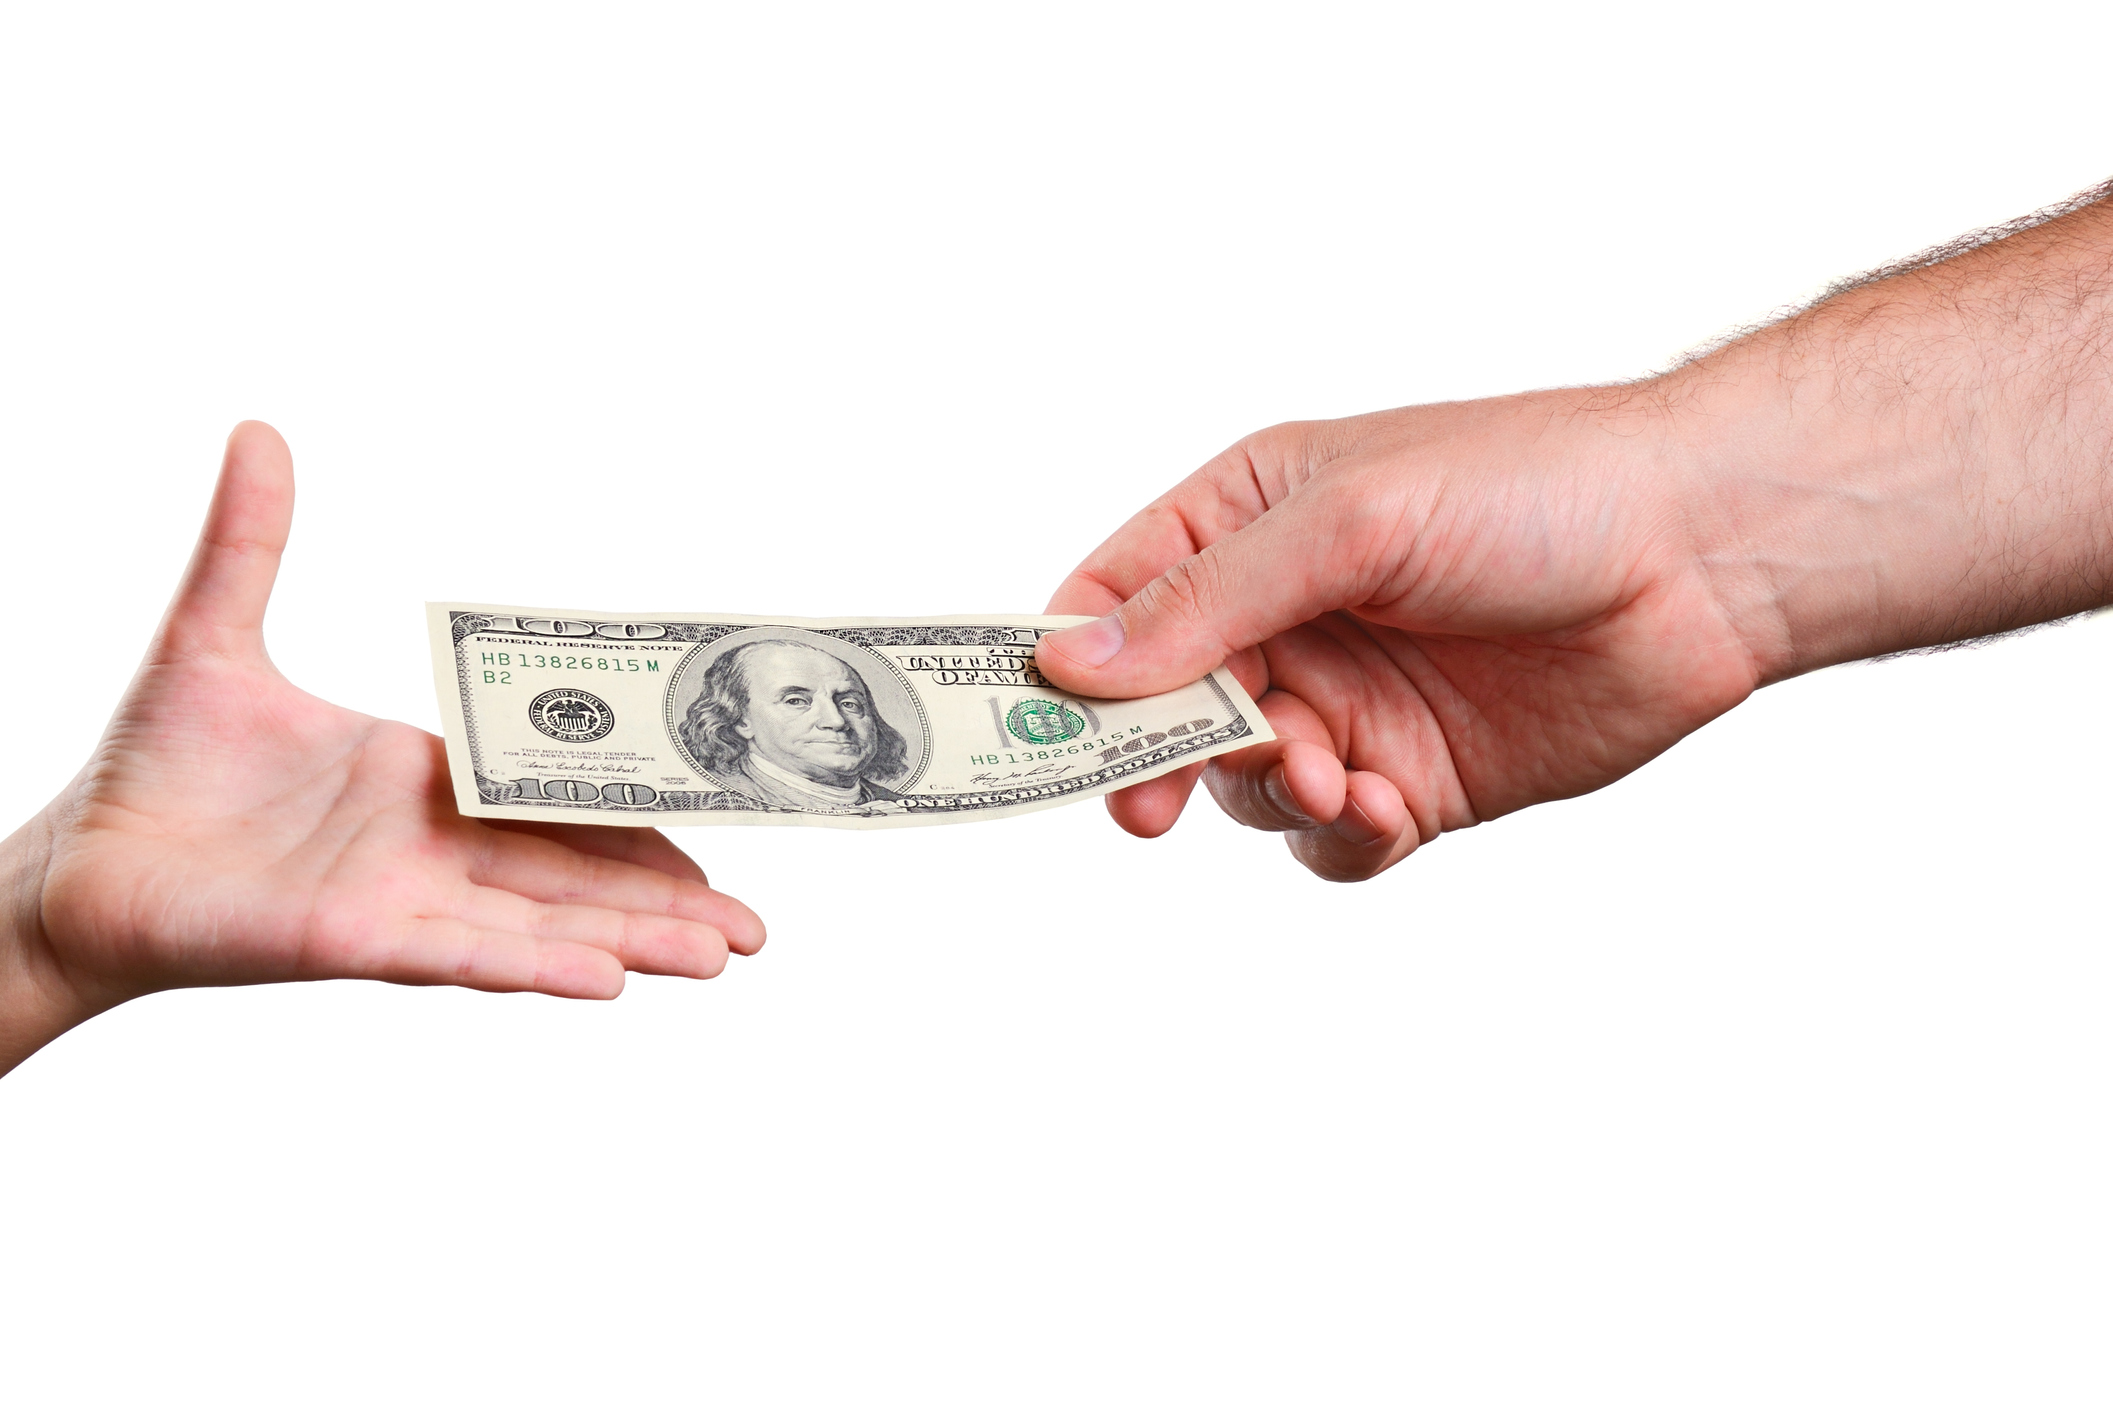 man's hand gives a the bill 100 US dollars in a child's hand. isolated on white background. horizontal. Image credit: TanyaRu, iStock